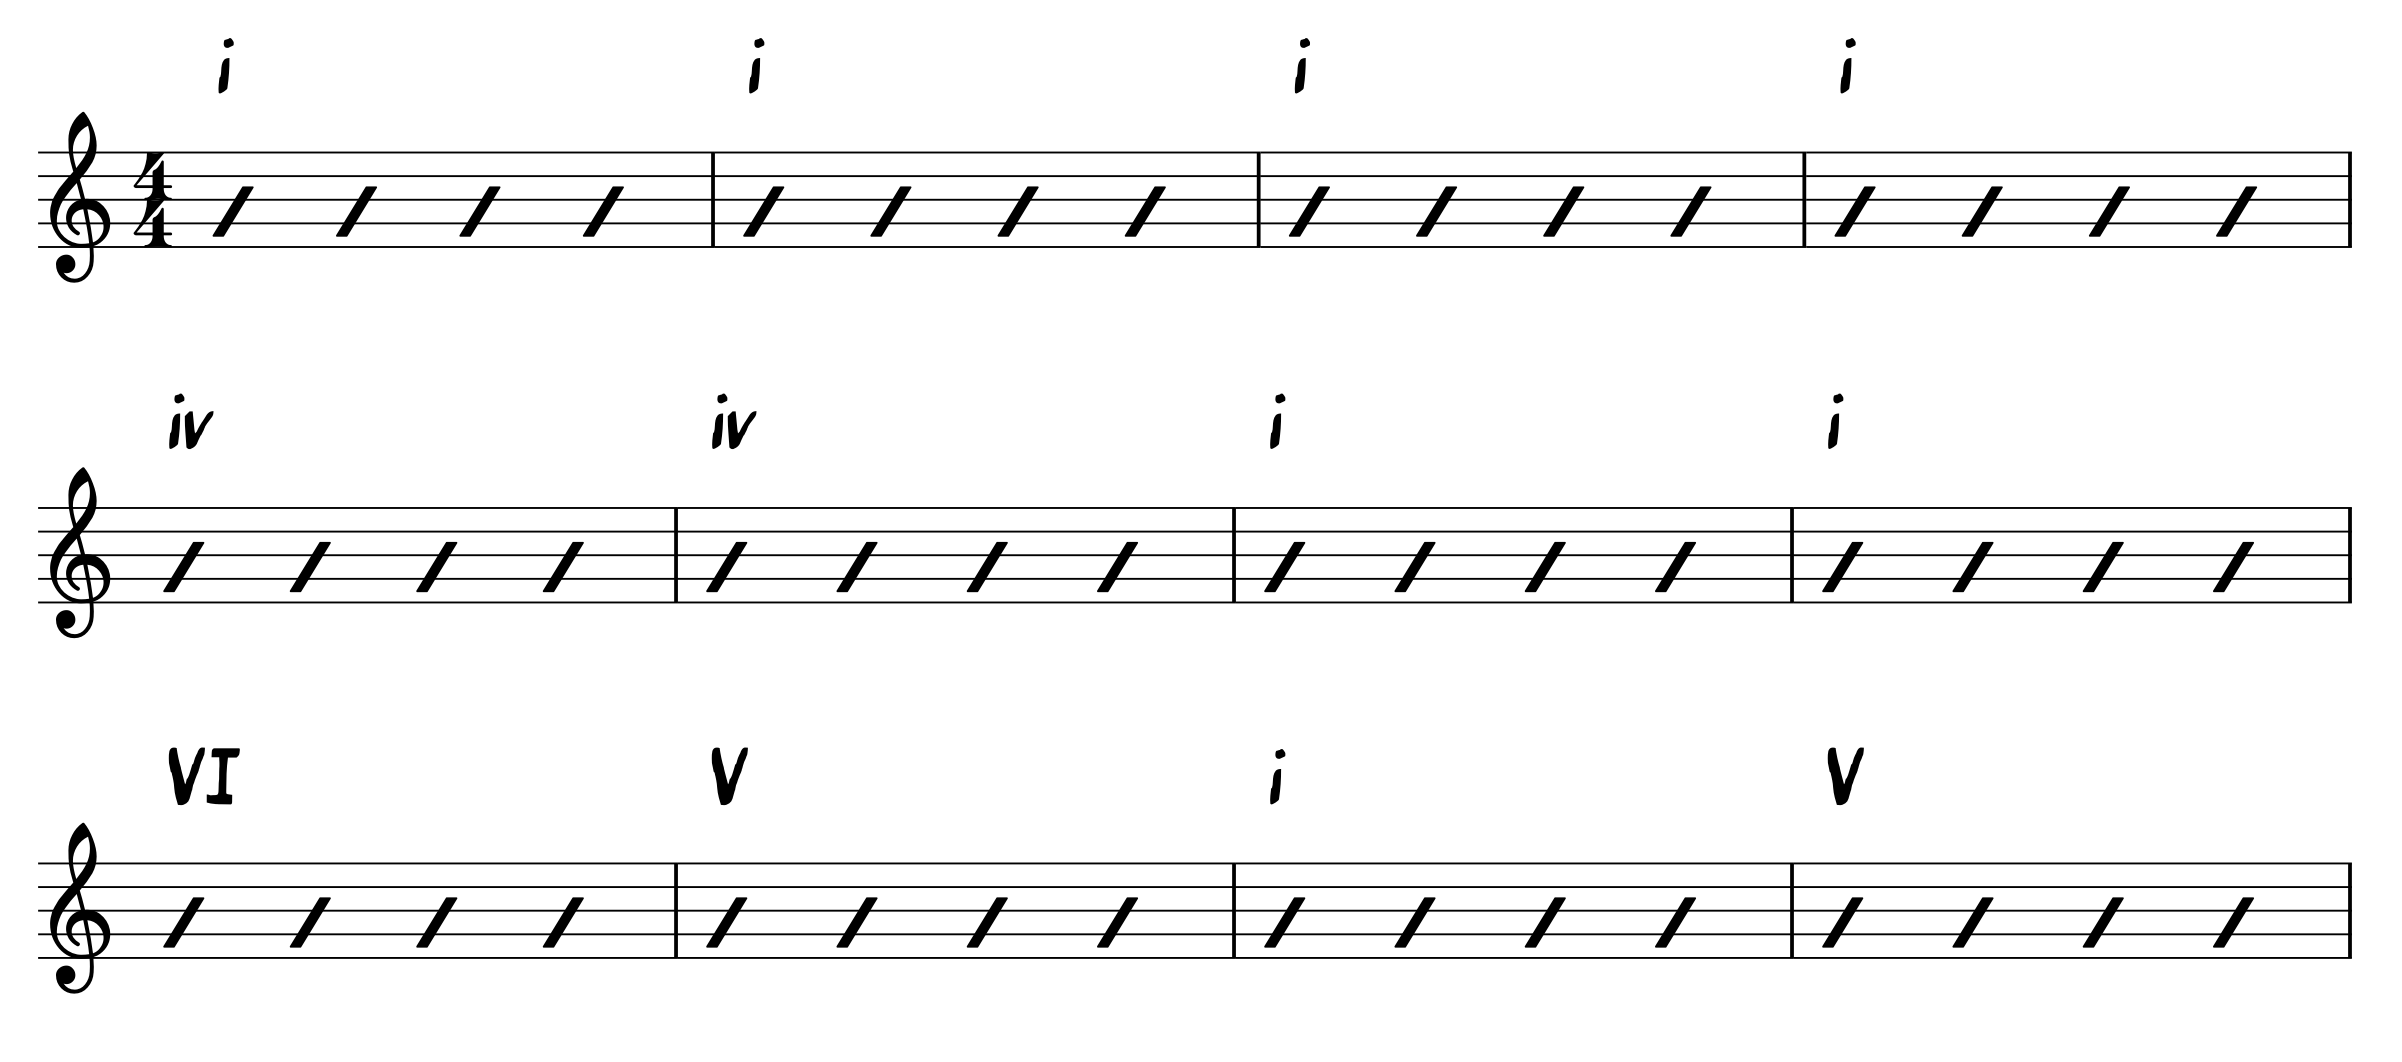 Chart minor blues progression Form 2 roman numerals